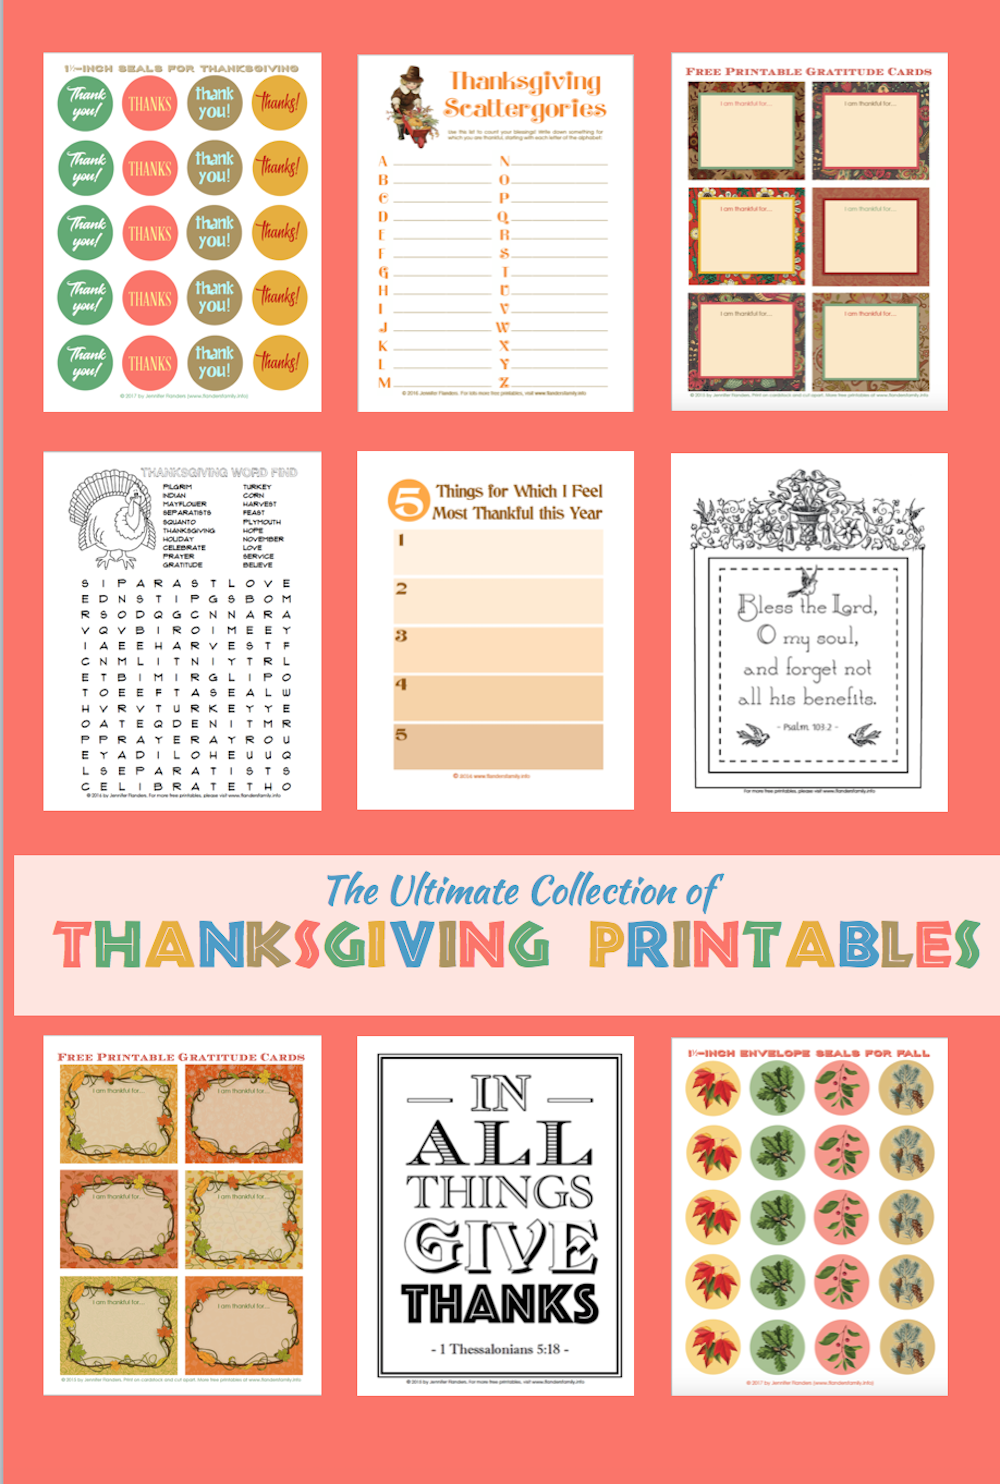 The Ultimate Collection of Thanksgiving Printables